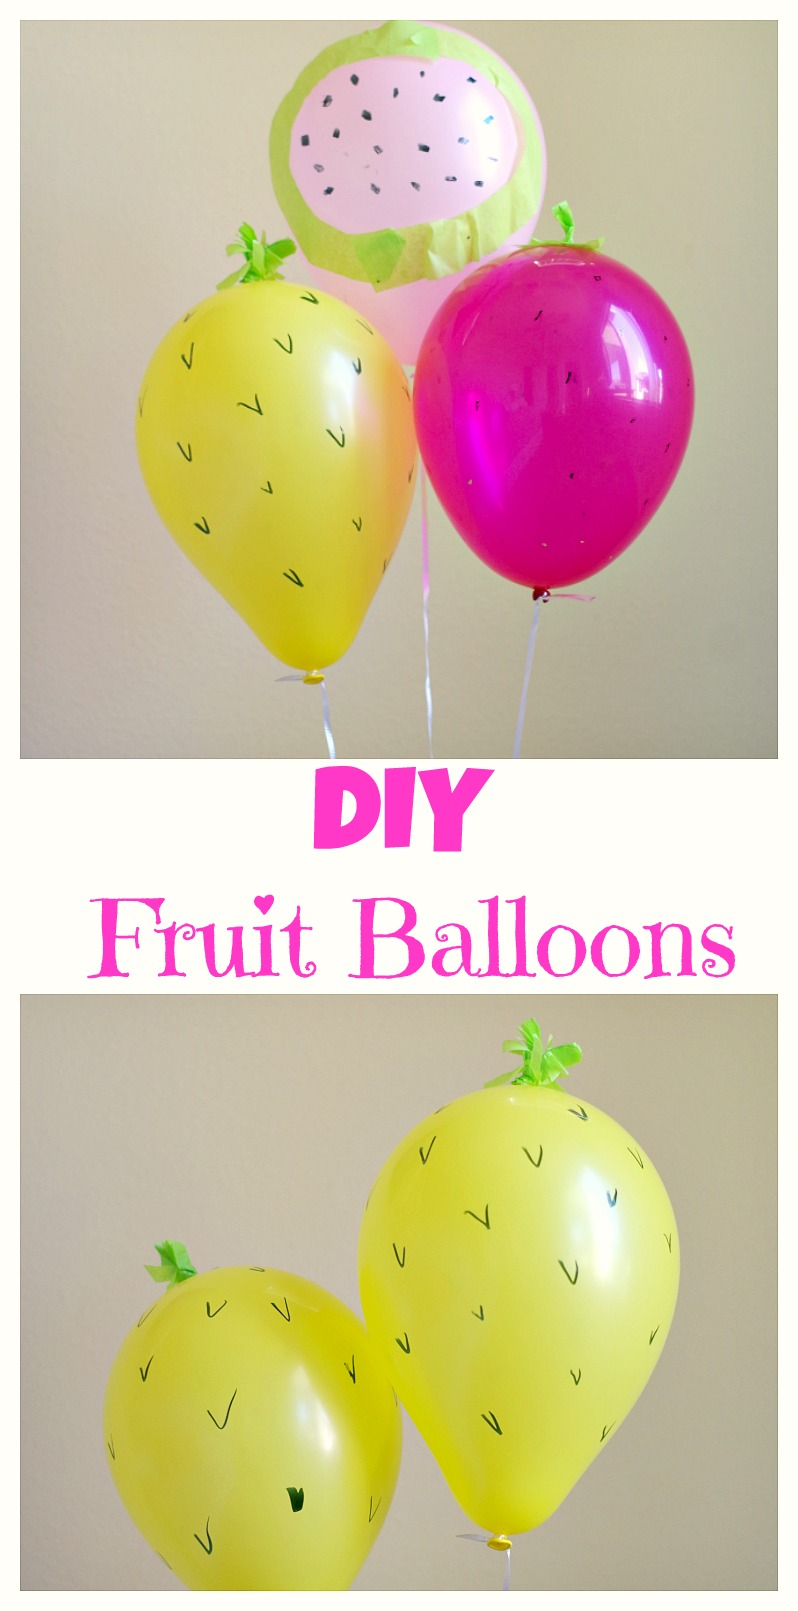 DIY Fruit Balloons! Celebrate summer by making these simple DIY balloons.